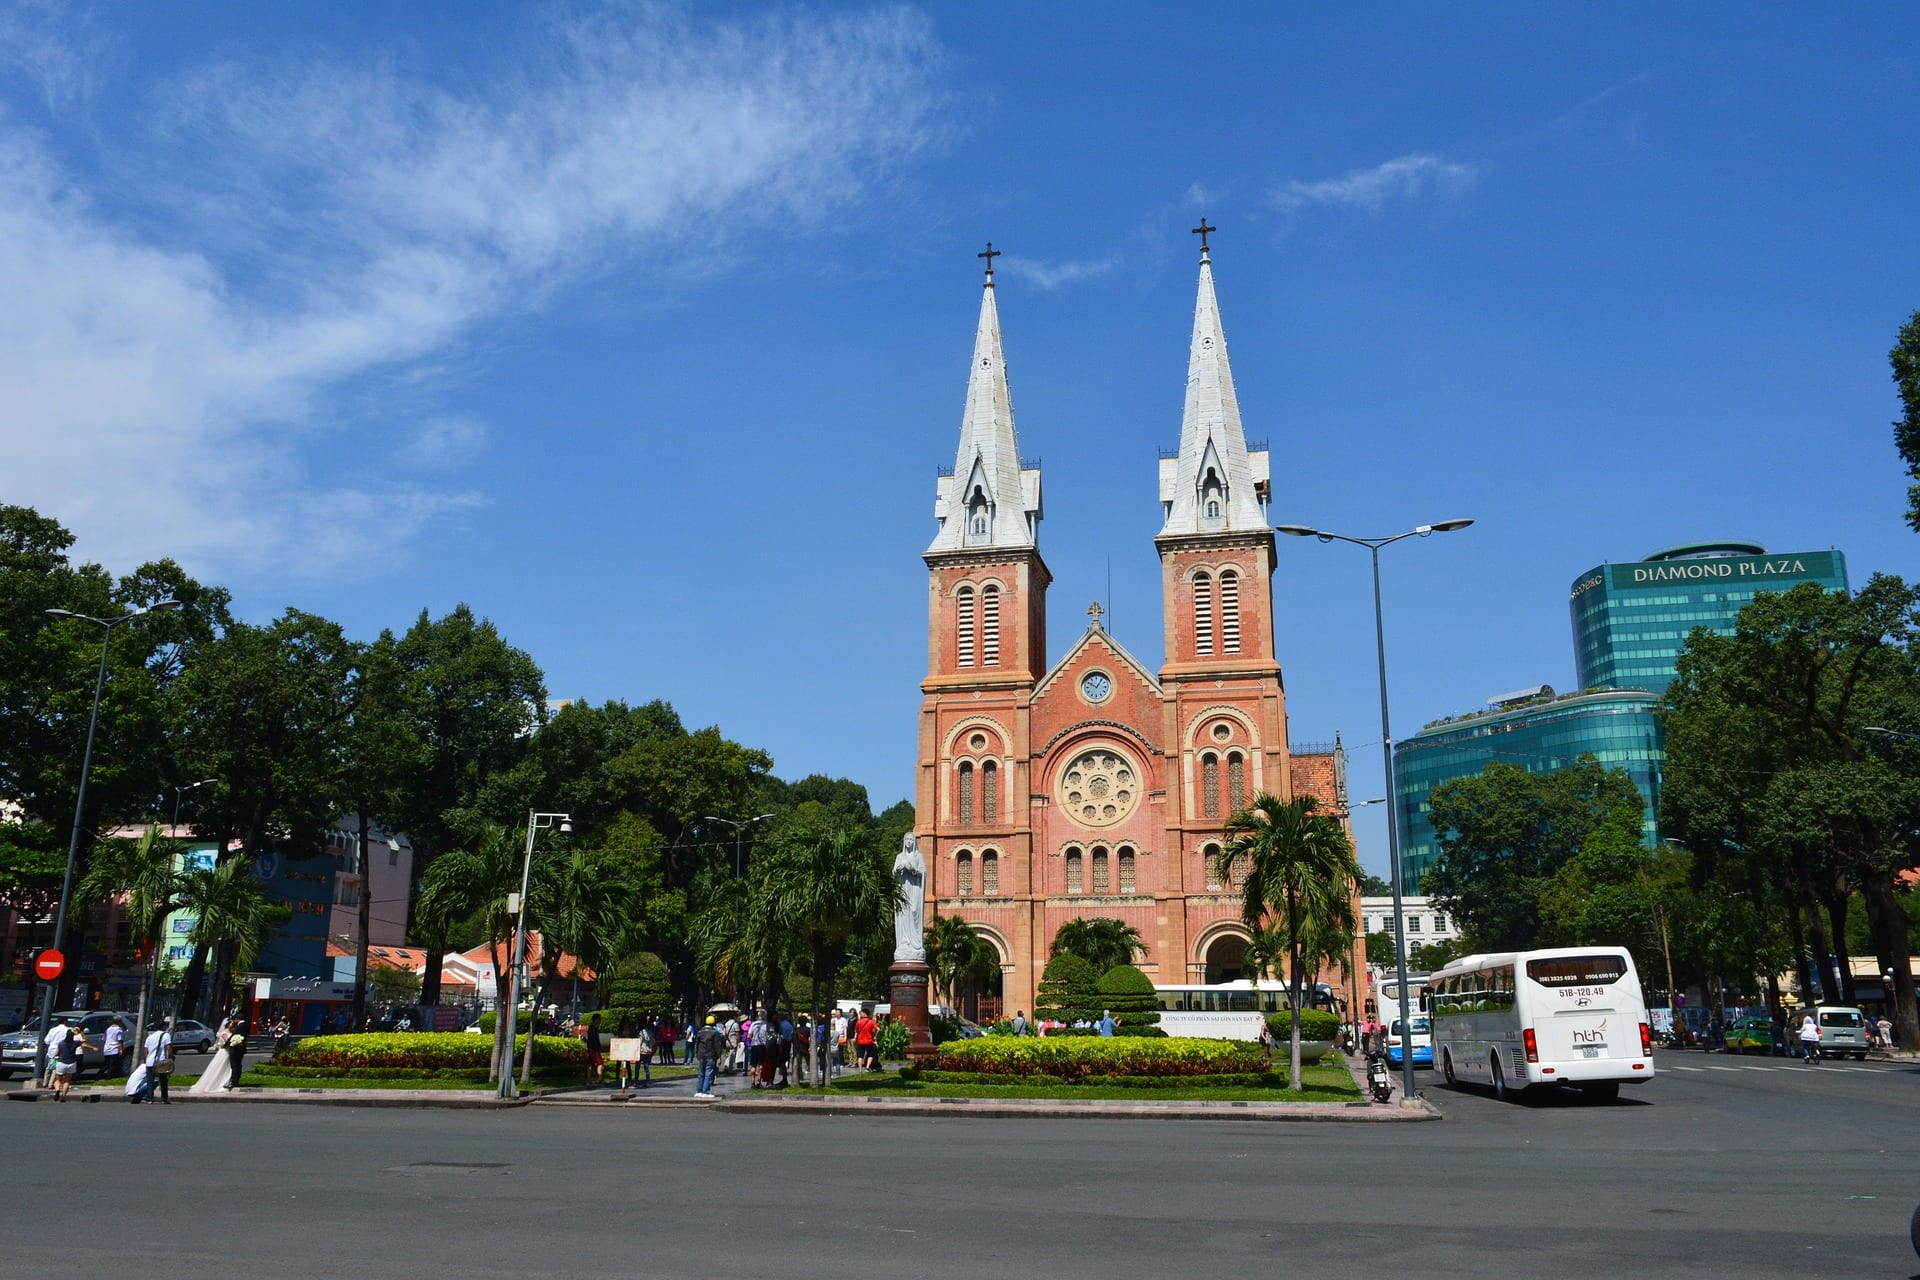 One of the things to do in Saigon is to visit the Notre Dame cathedral